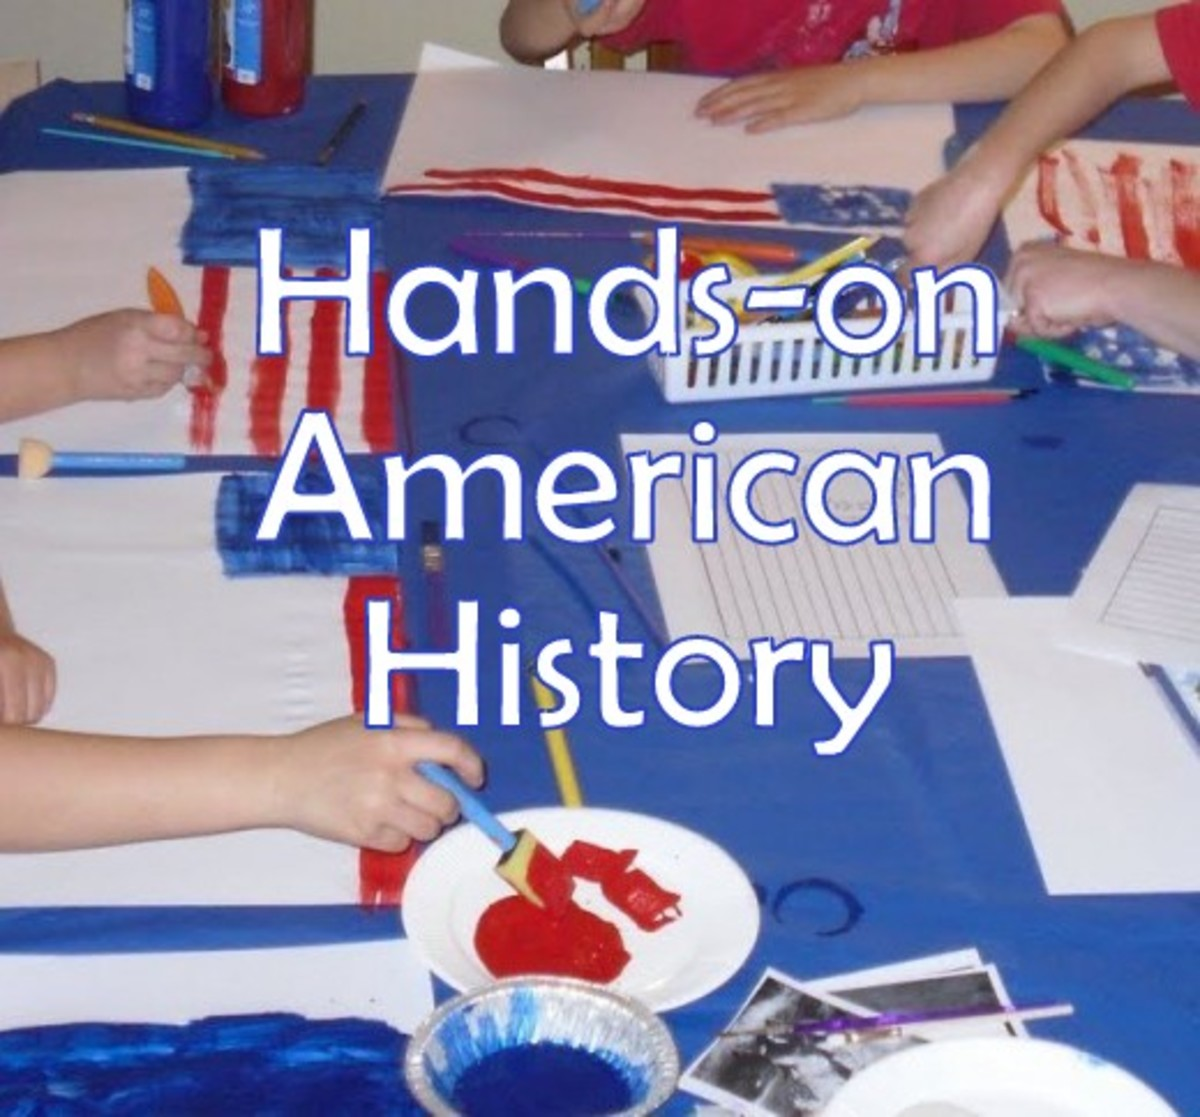 Hands-on American History: American War for Independence Battles Lesson in 45 Minutes